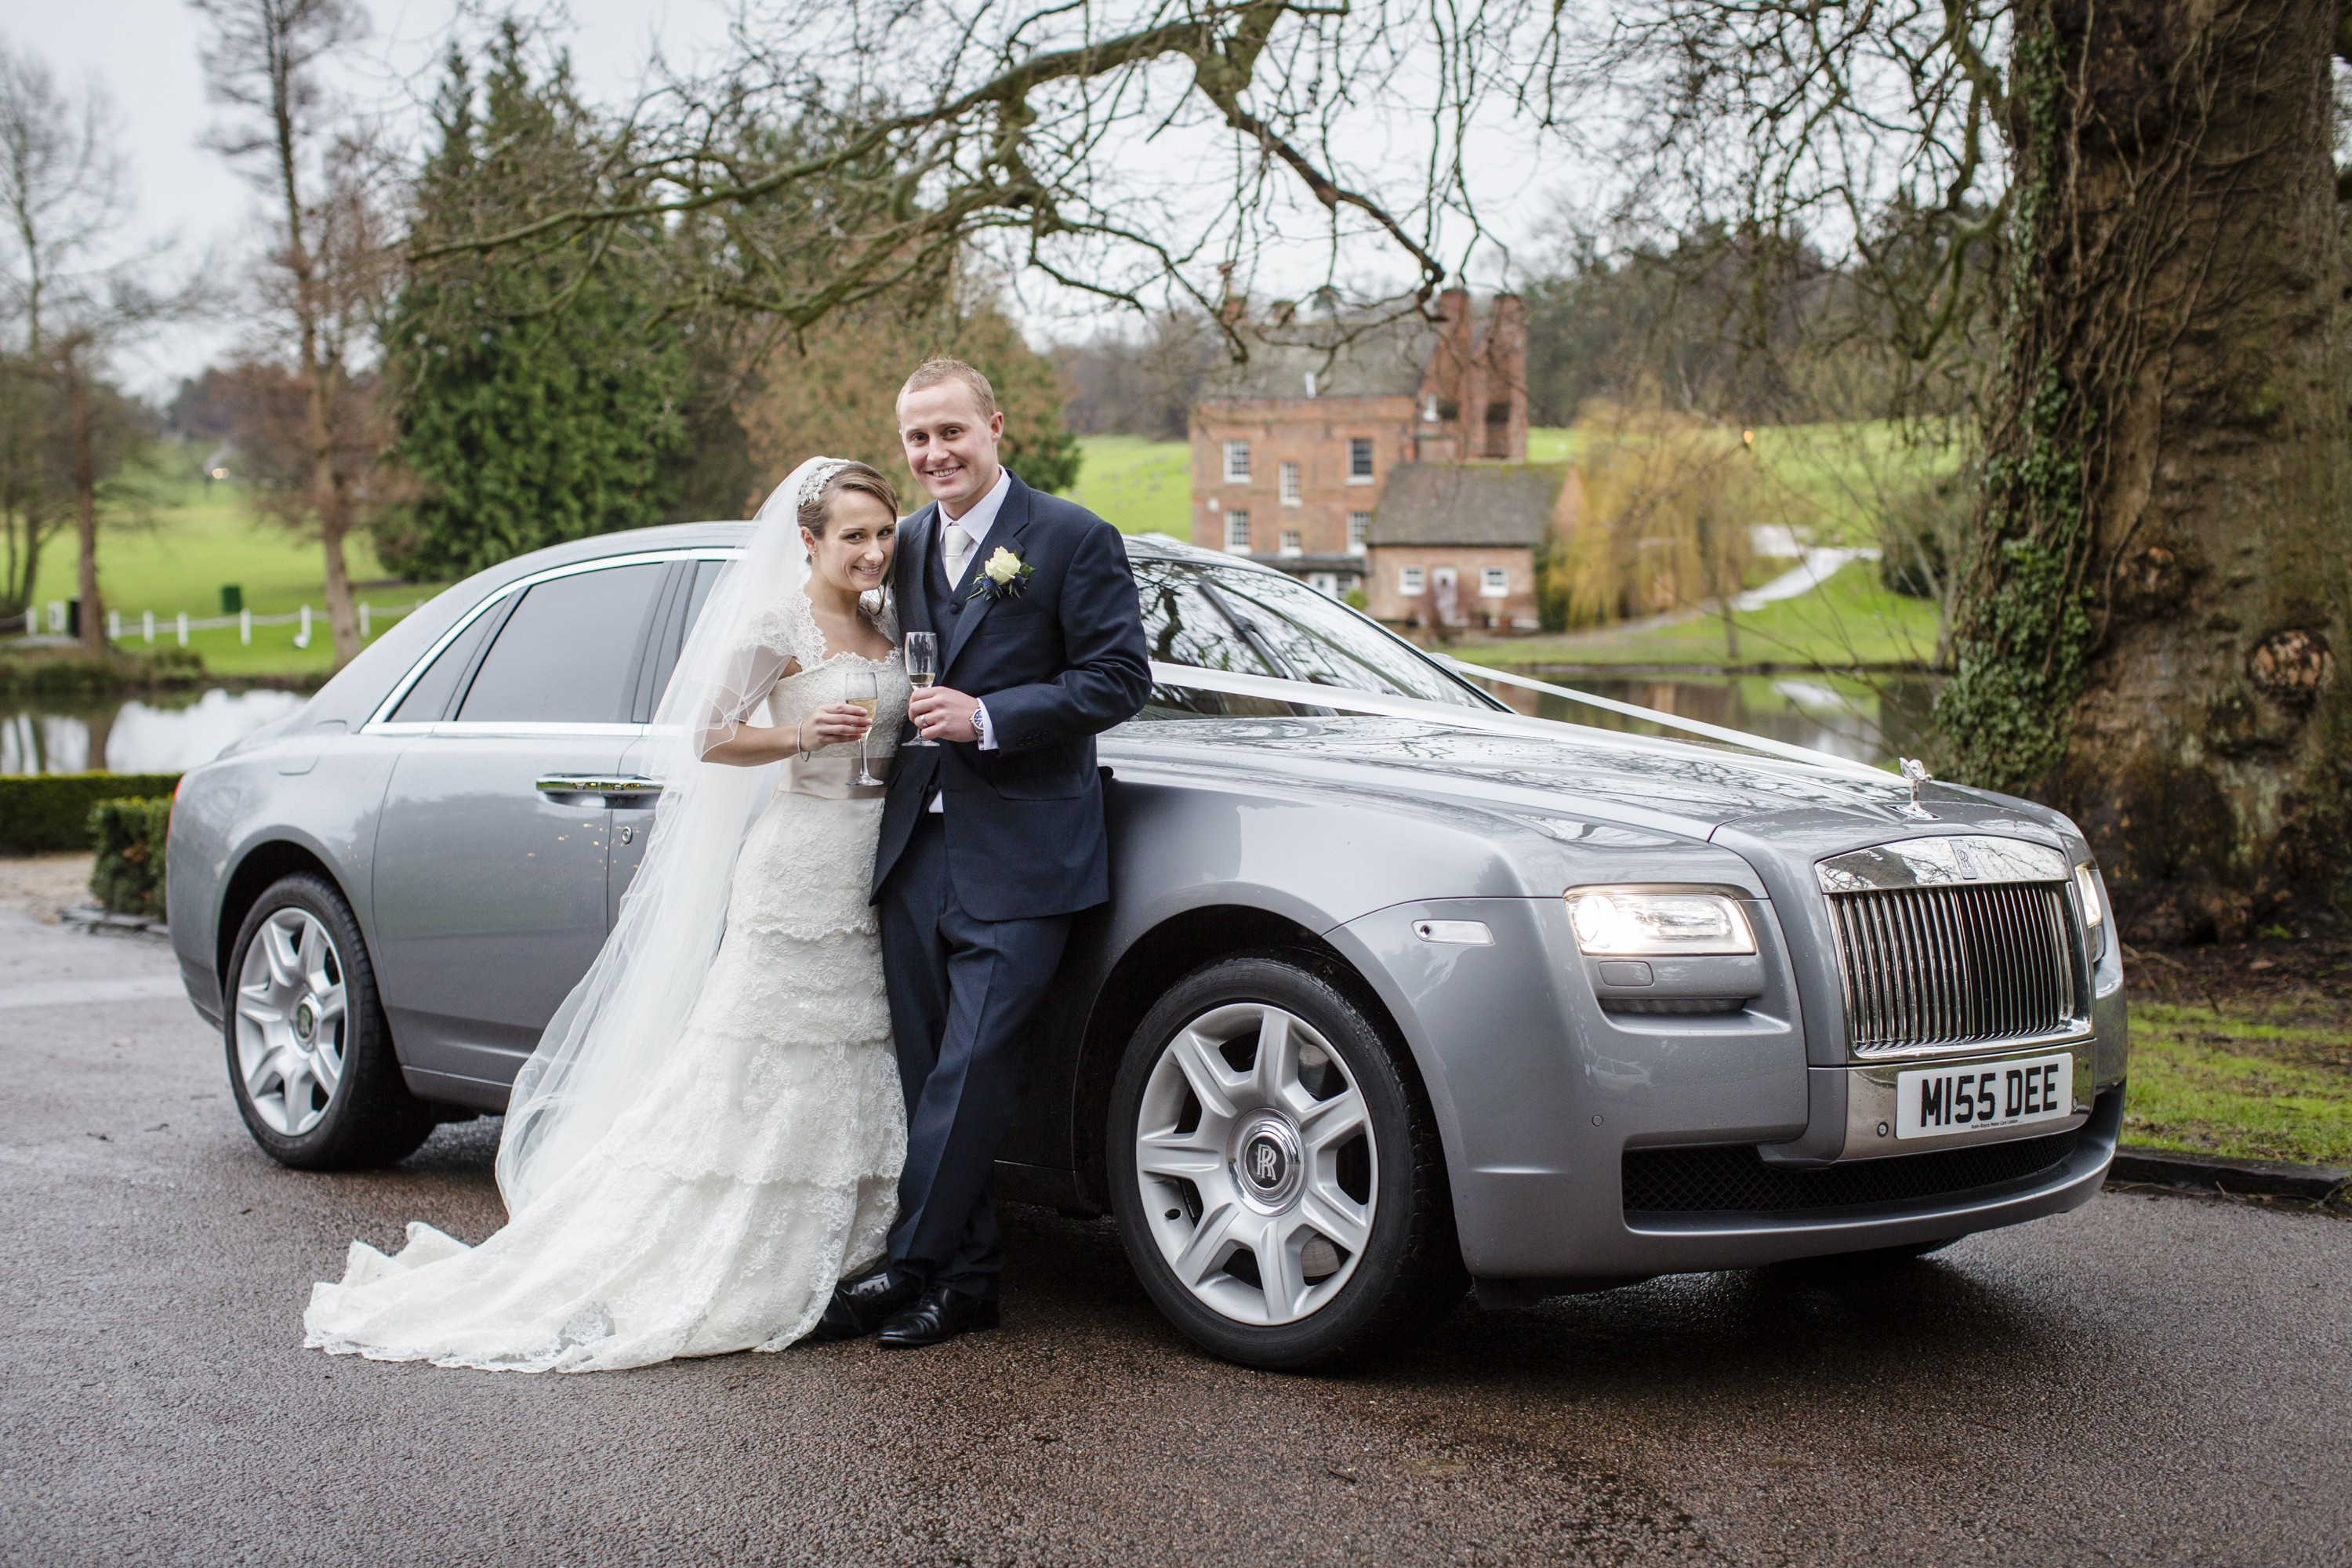 Introducing Signature Wedding Car Hire